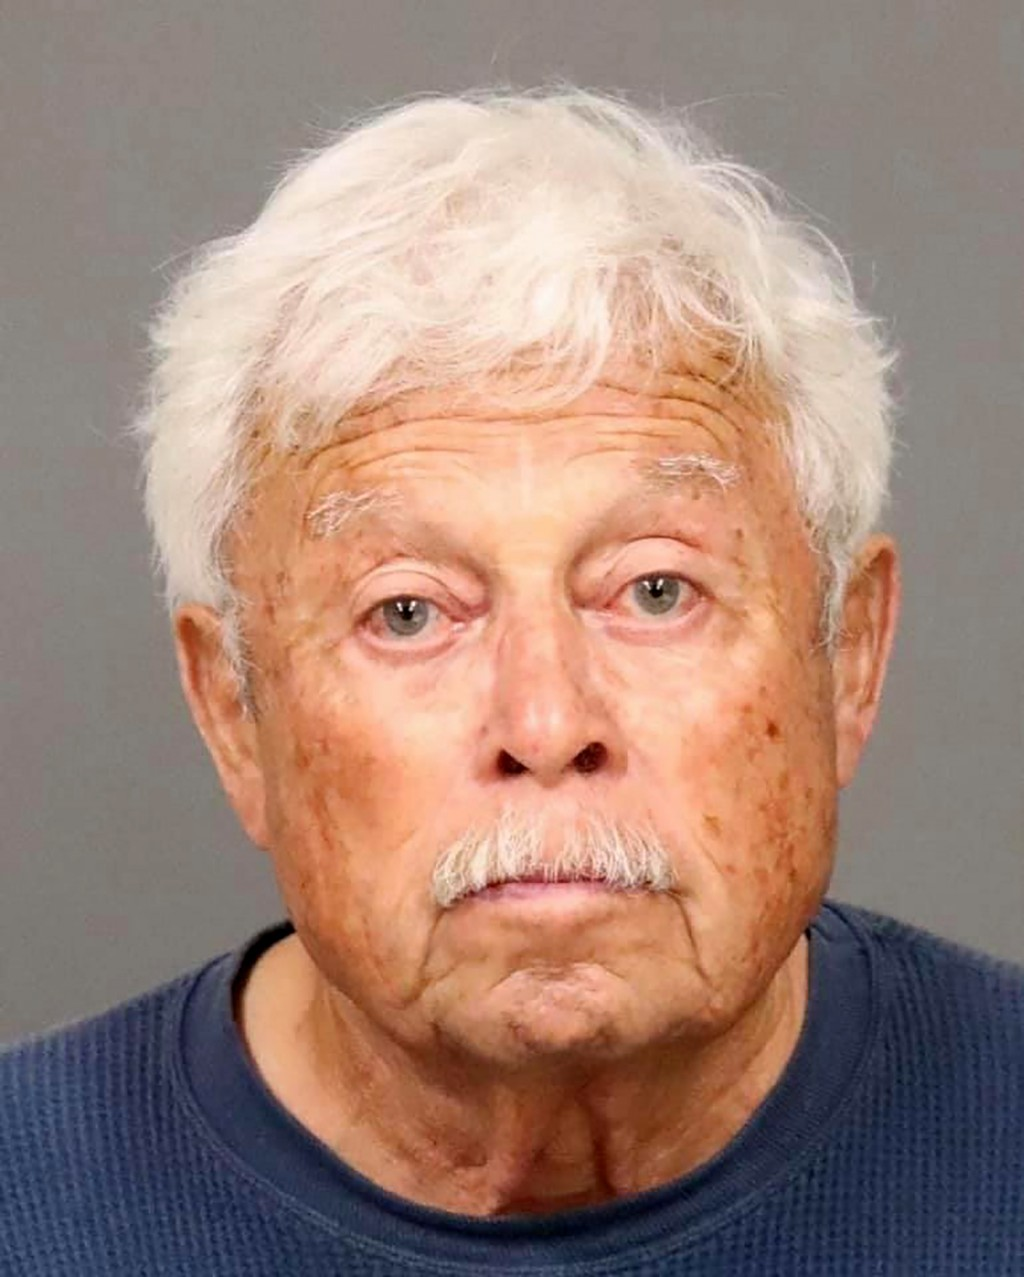 This photo provided by the San Luis Obispo County Sheriff's Office shows Ruben Flores, 80, who was arrested in connection to the murder of college stu...